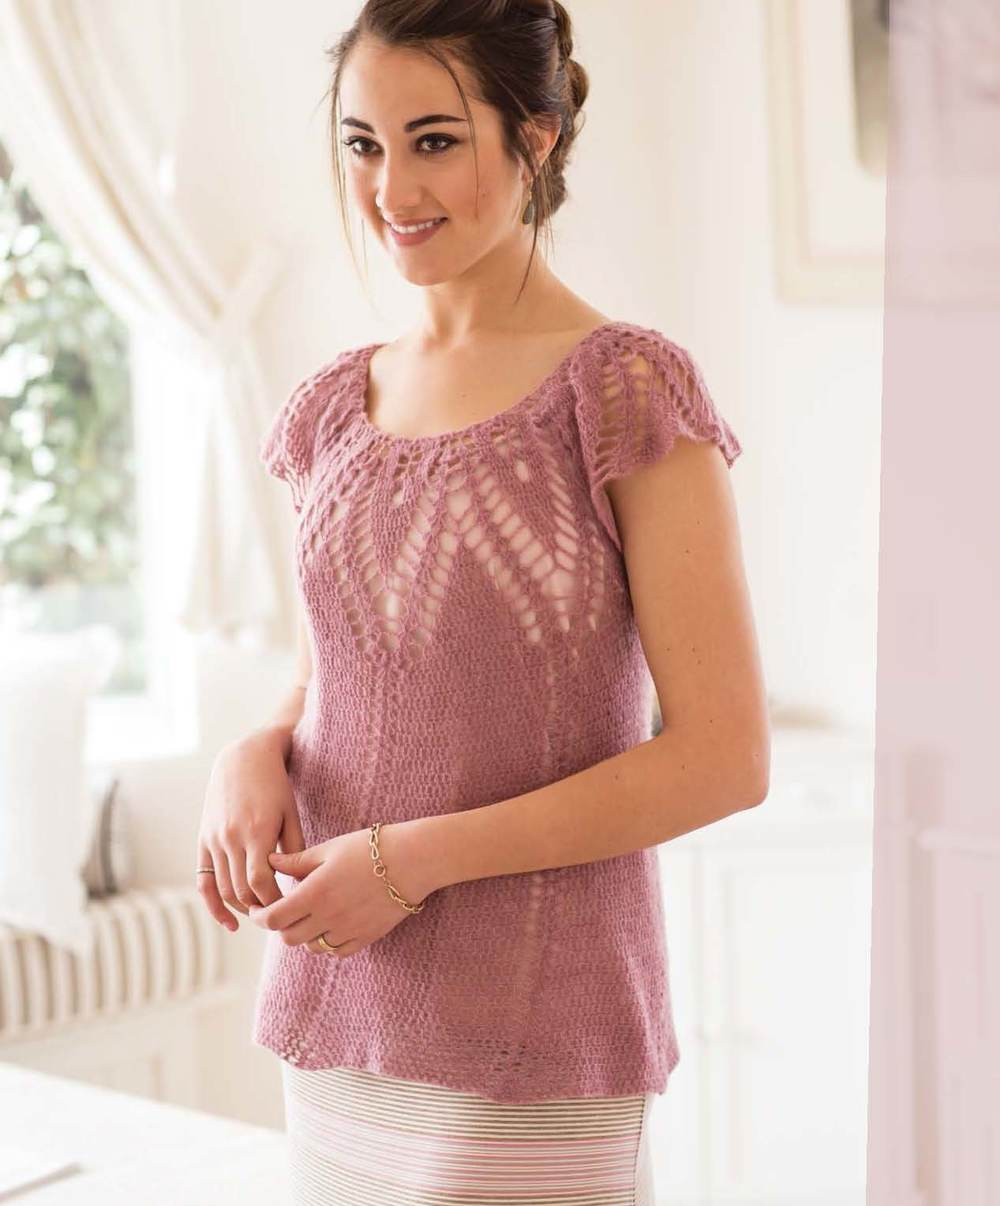 Crochet So Lovely -  Liliana Pullover beauty shot.jpg